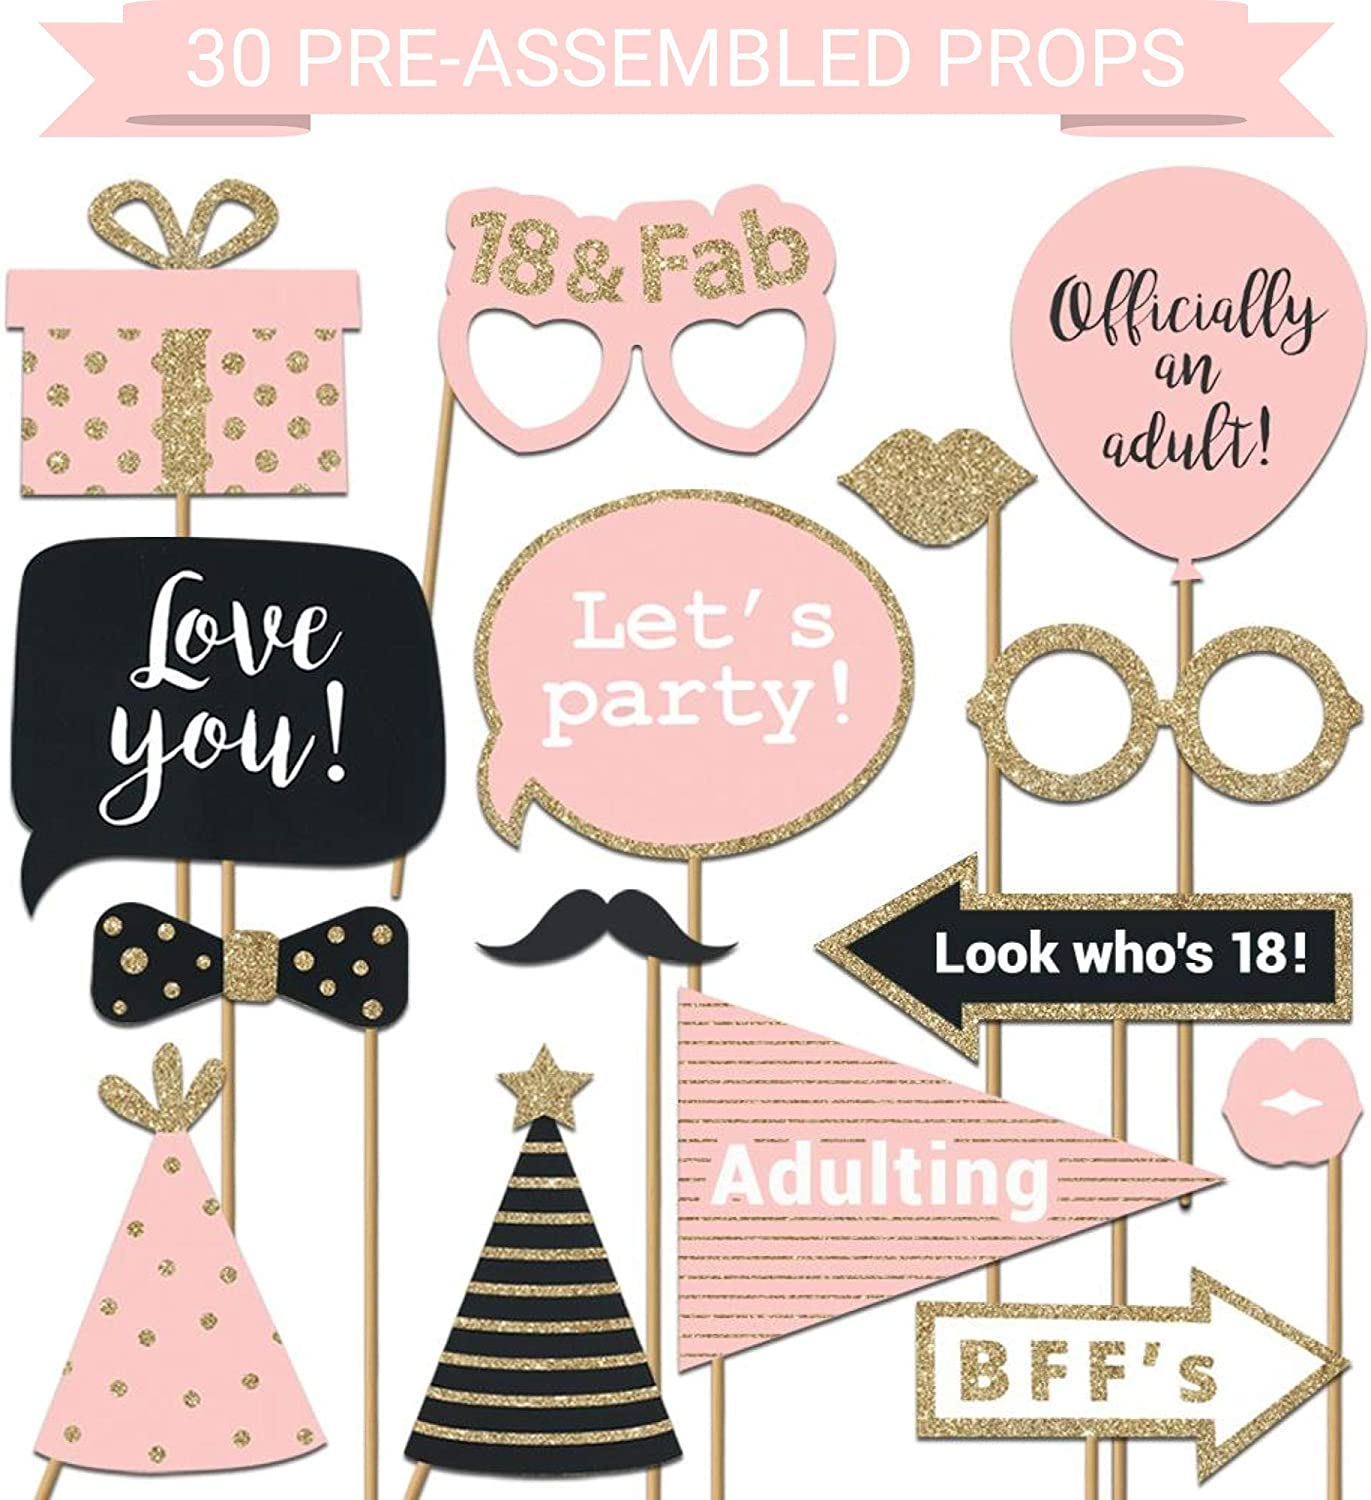 Fully Assembled 18th Birthday Photo Booth Props - Set of 30 - Pink & Gold Selfie Signs - 18th Party Supplies & Decorations - Cute 18th Bday Designs with Real Glitter - Did we mention no DIY?